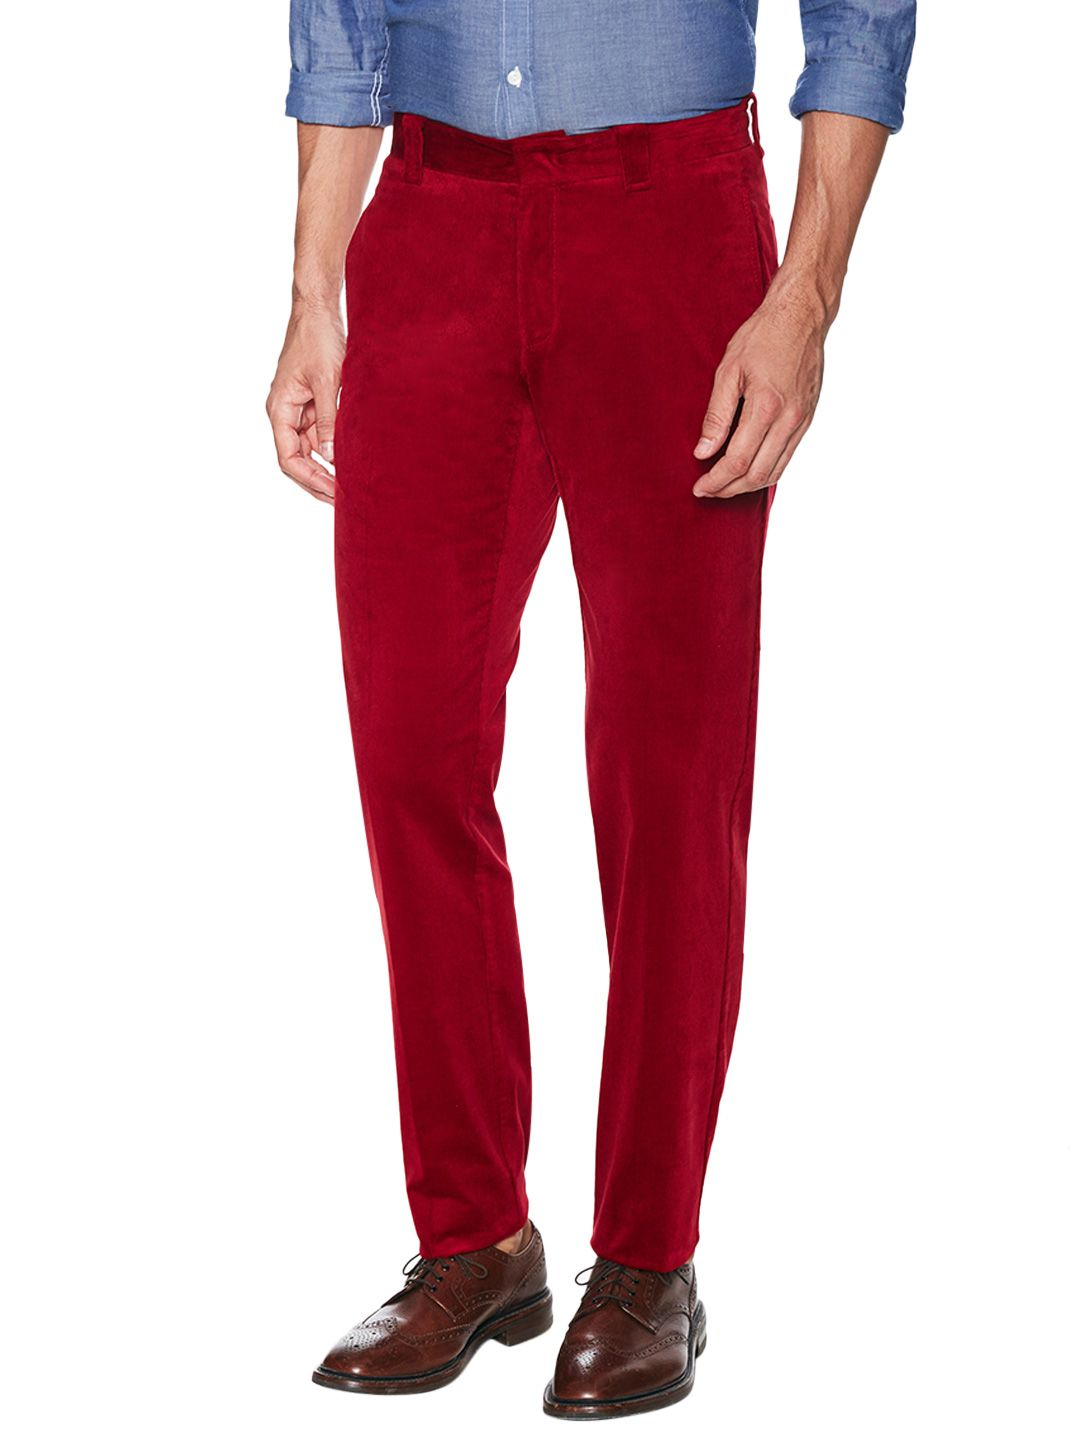 Red duca vusconti corduroy dress pants men fashion pinterest